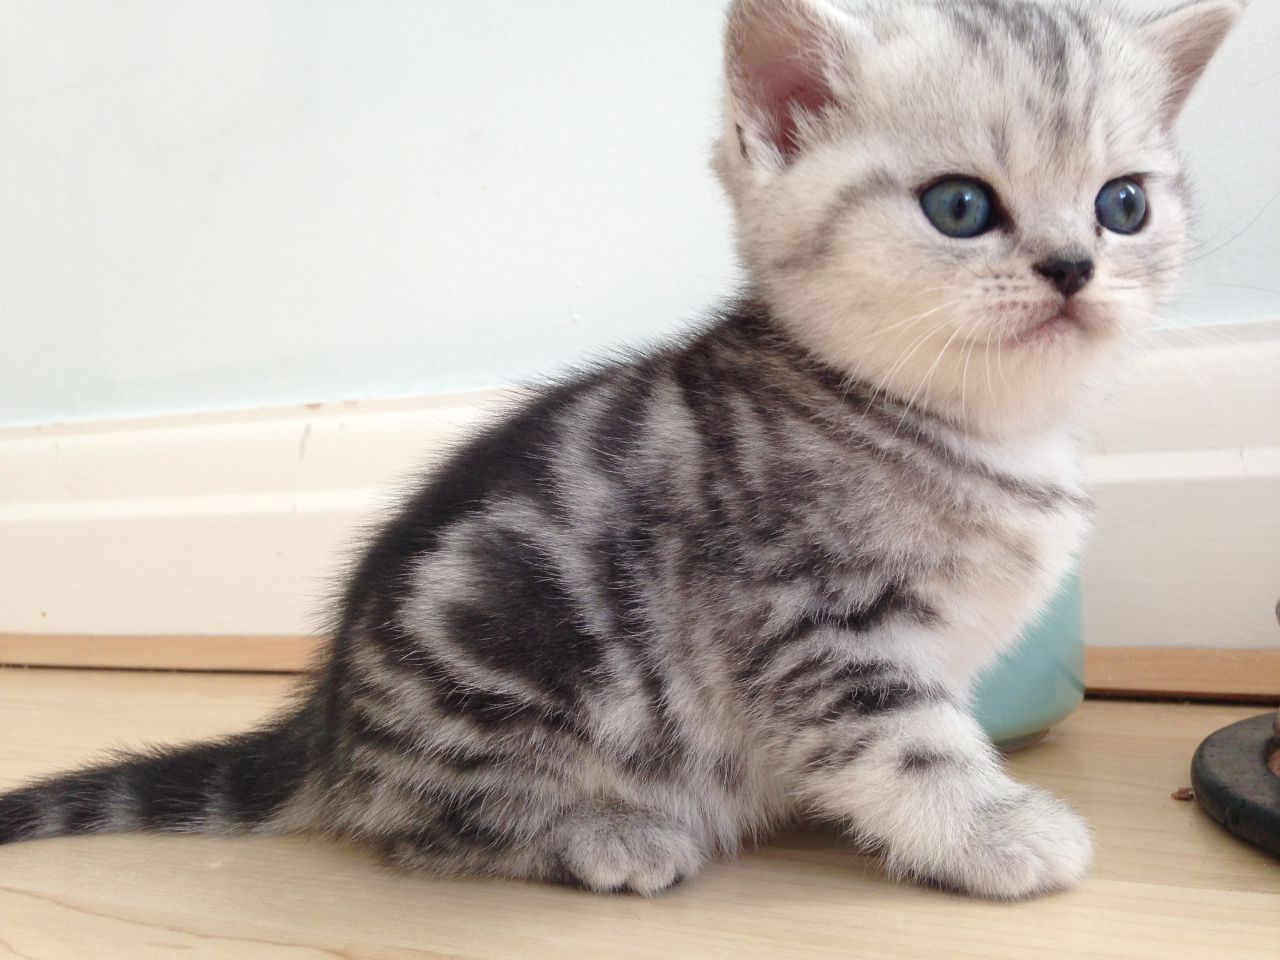 Look at our cute new baby kittens Pinterest